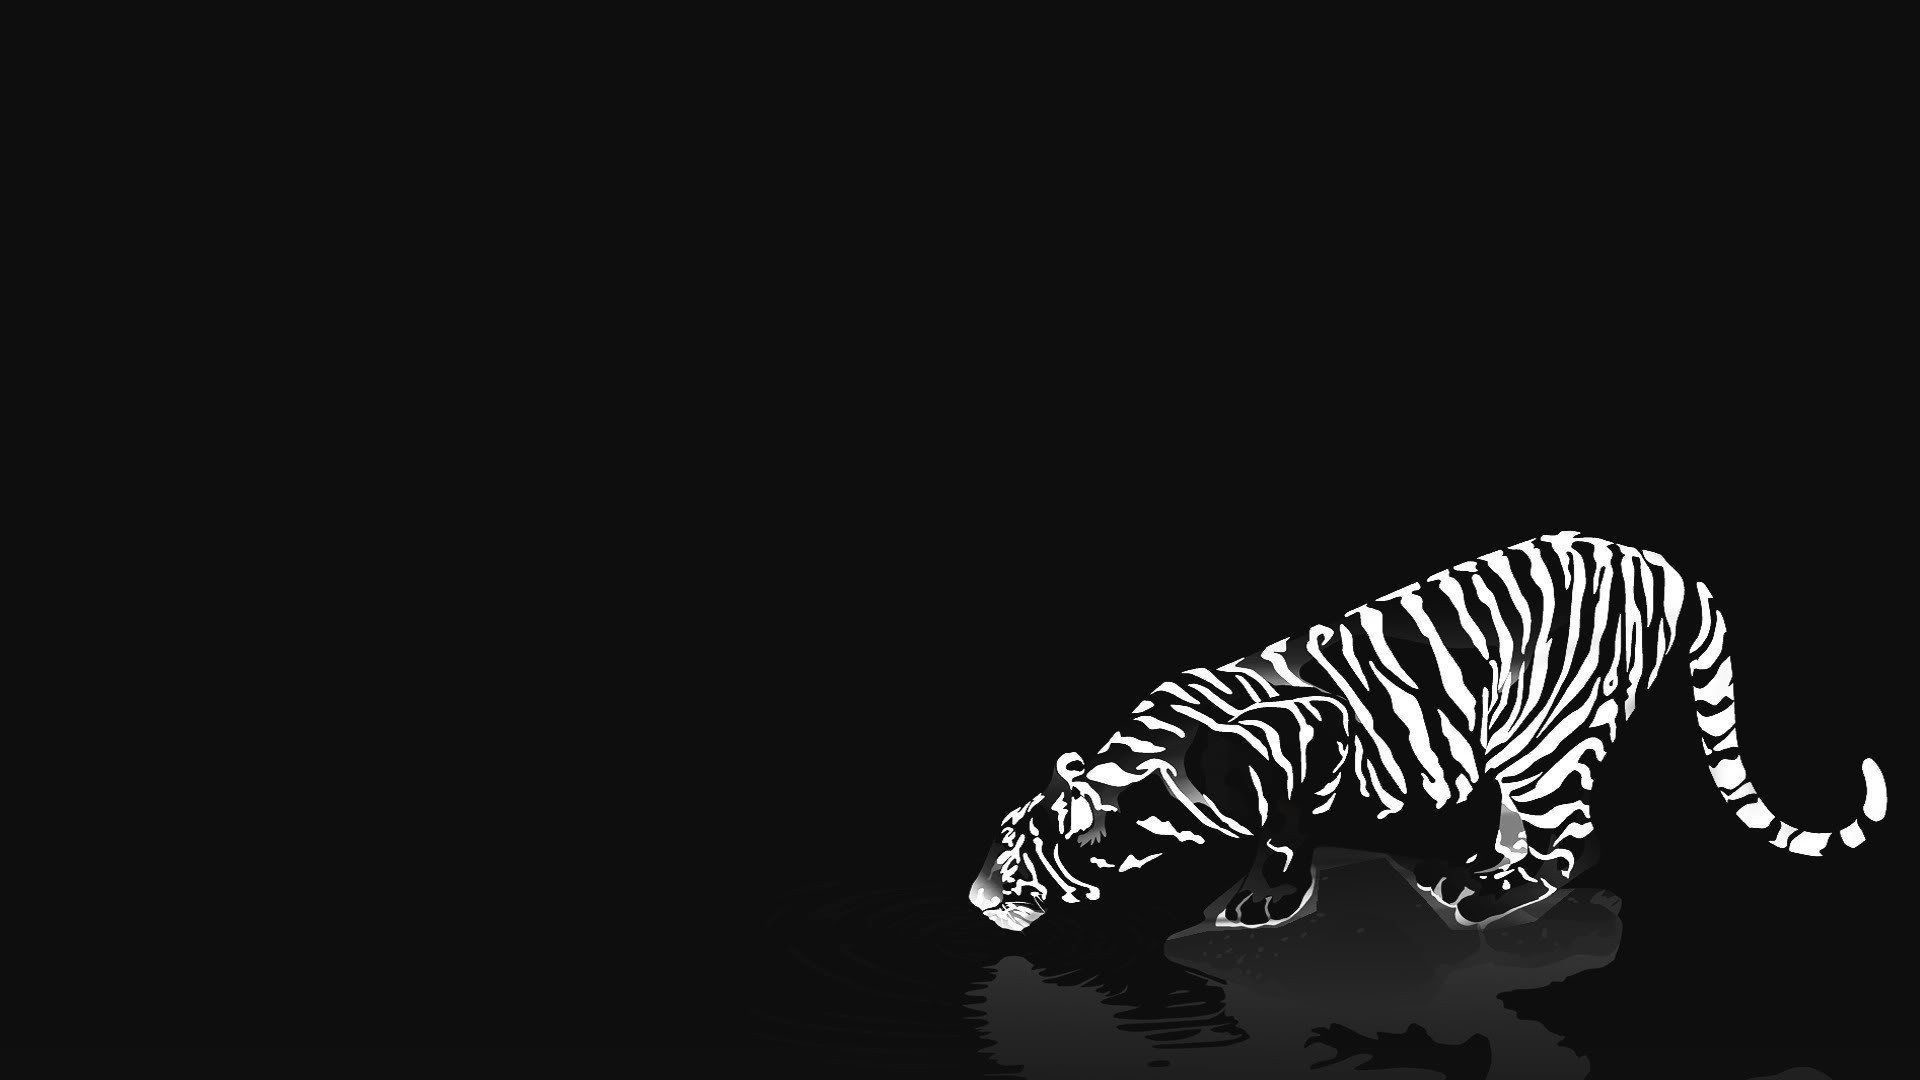 Cats animals tigers white tiger reflections black background .